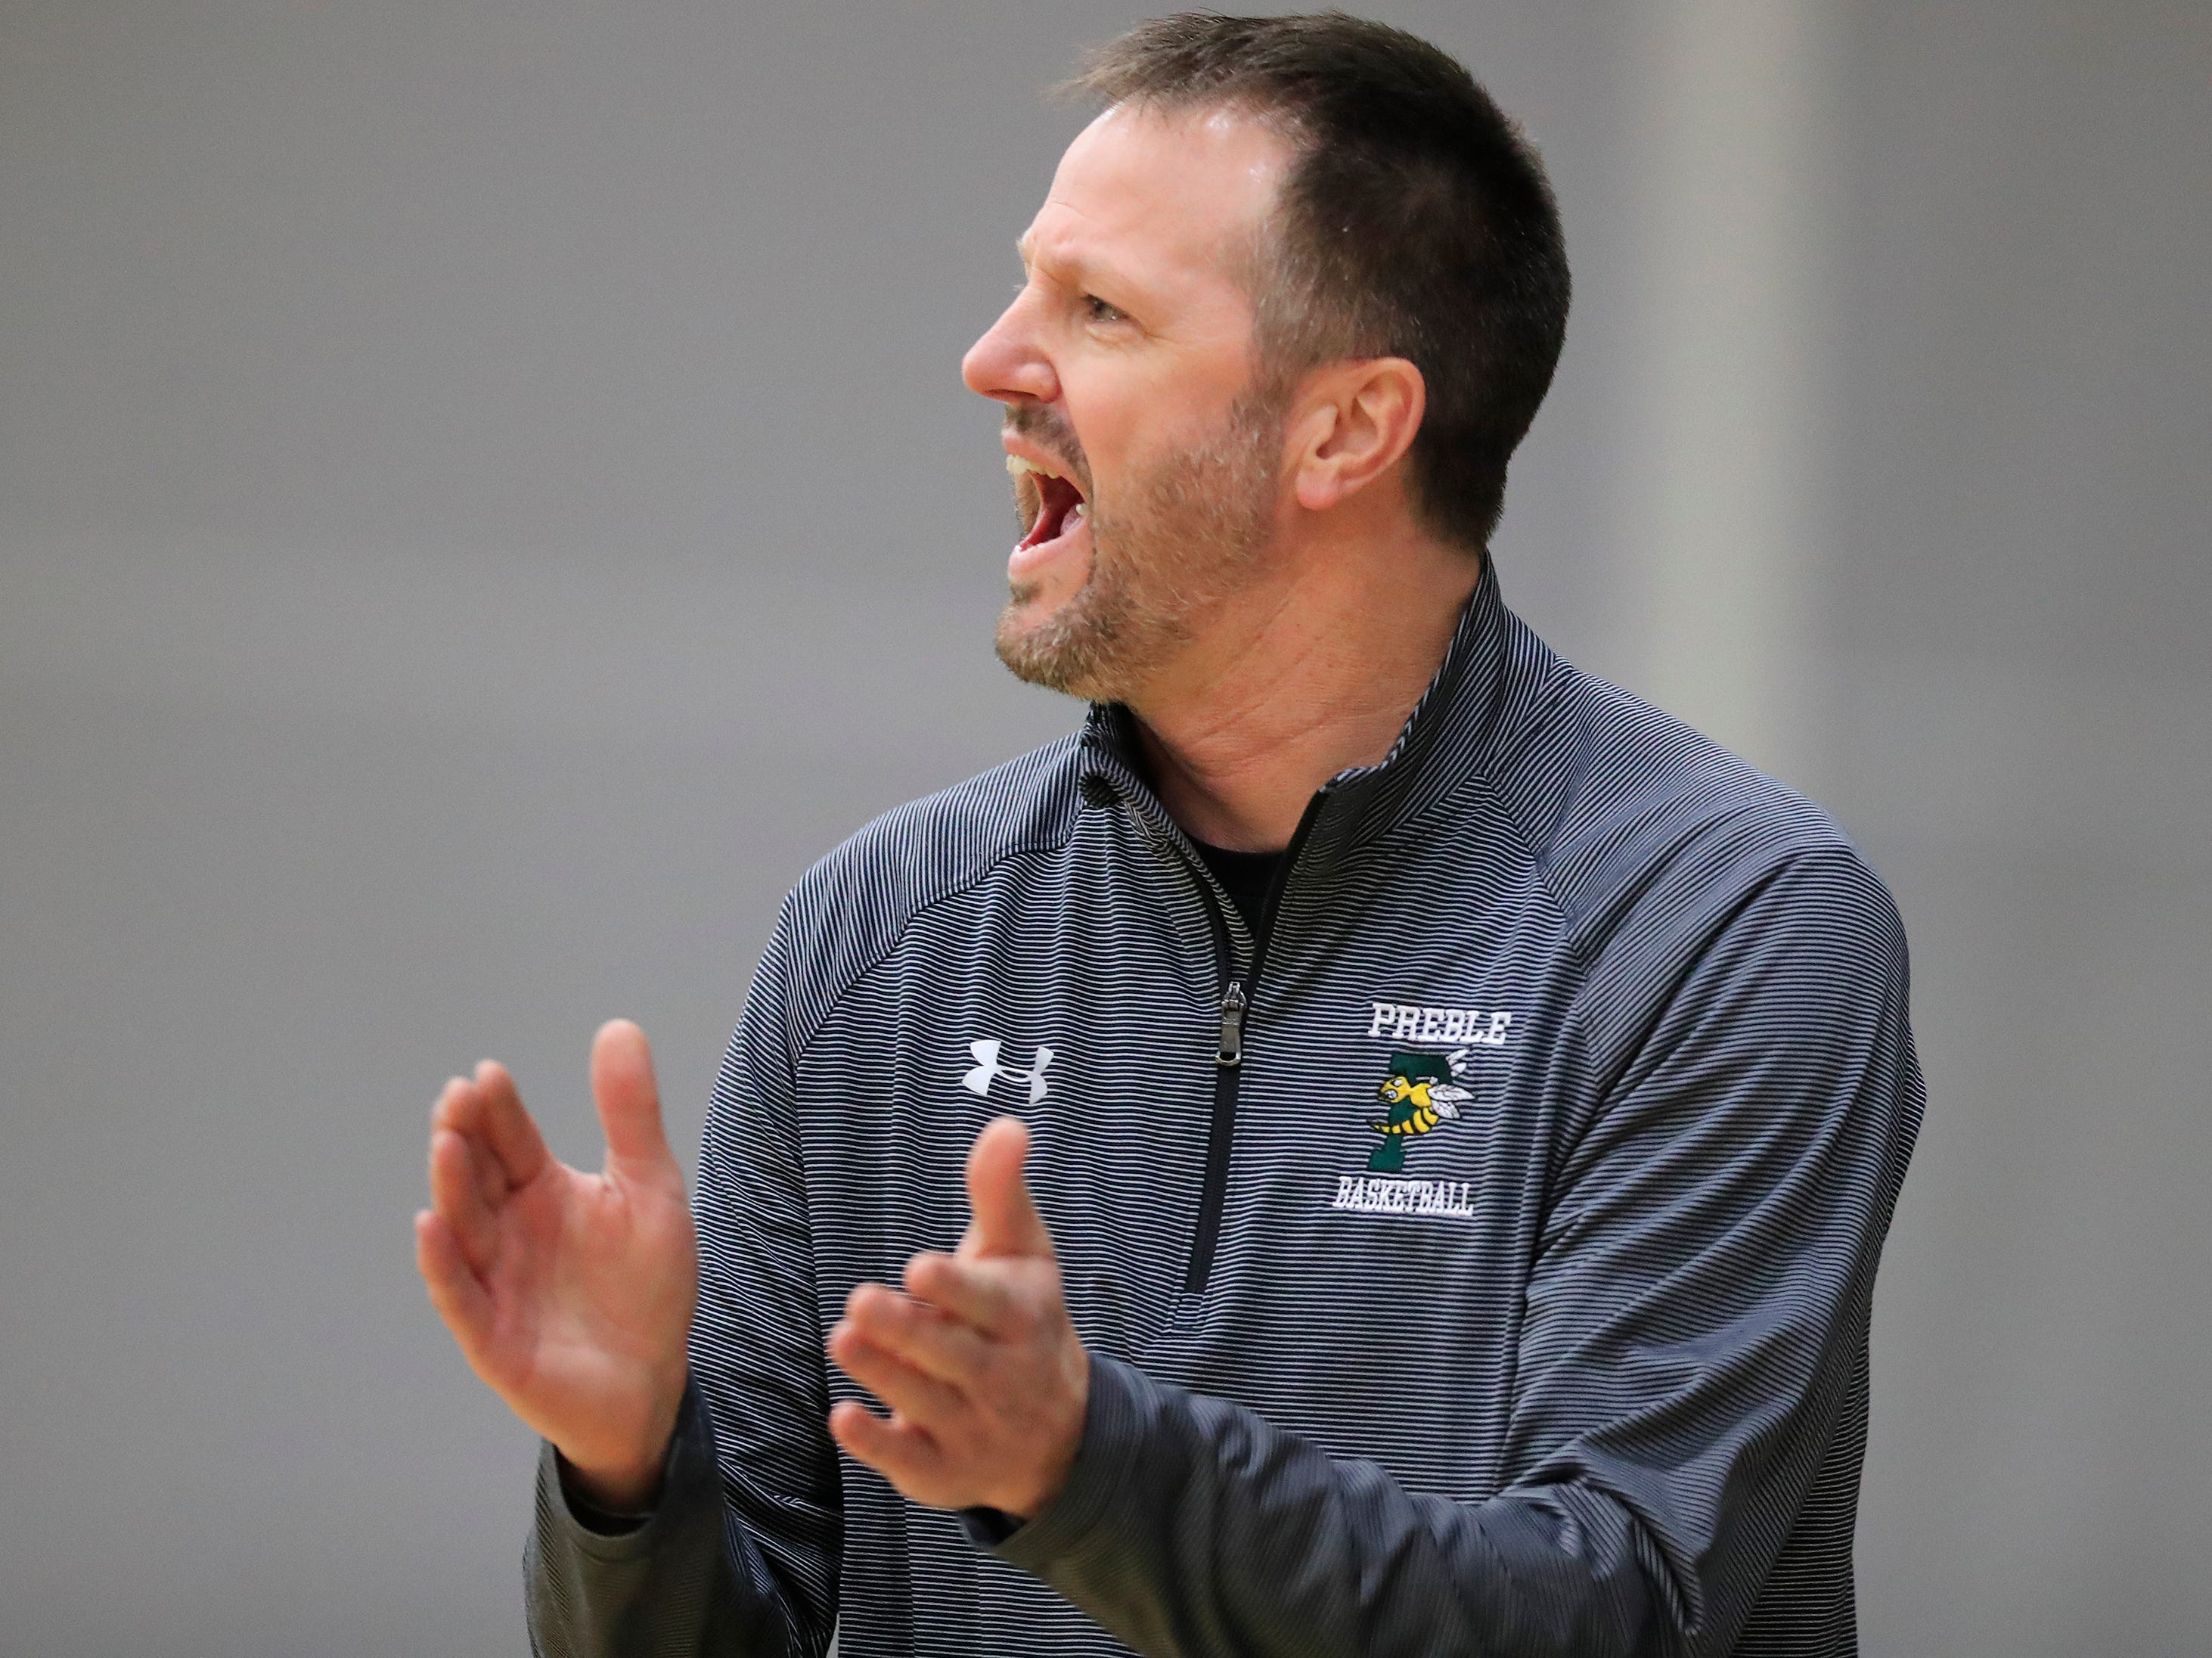 Green Bay Preble head coach Jim Doell reacts on the sideline during in a girls basketball game against De Pere at Preble high school on Tuesday, January 8, 2019 in Green Bay, Wis.